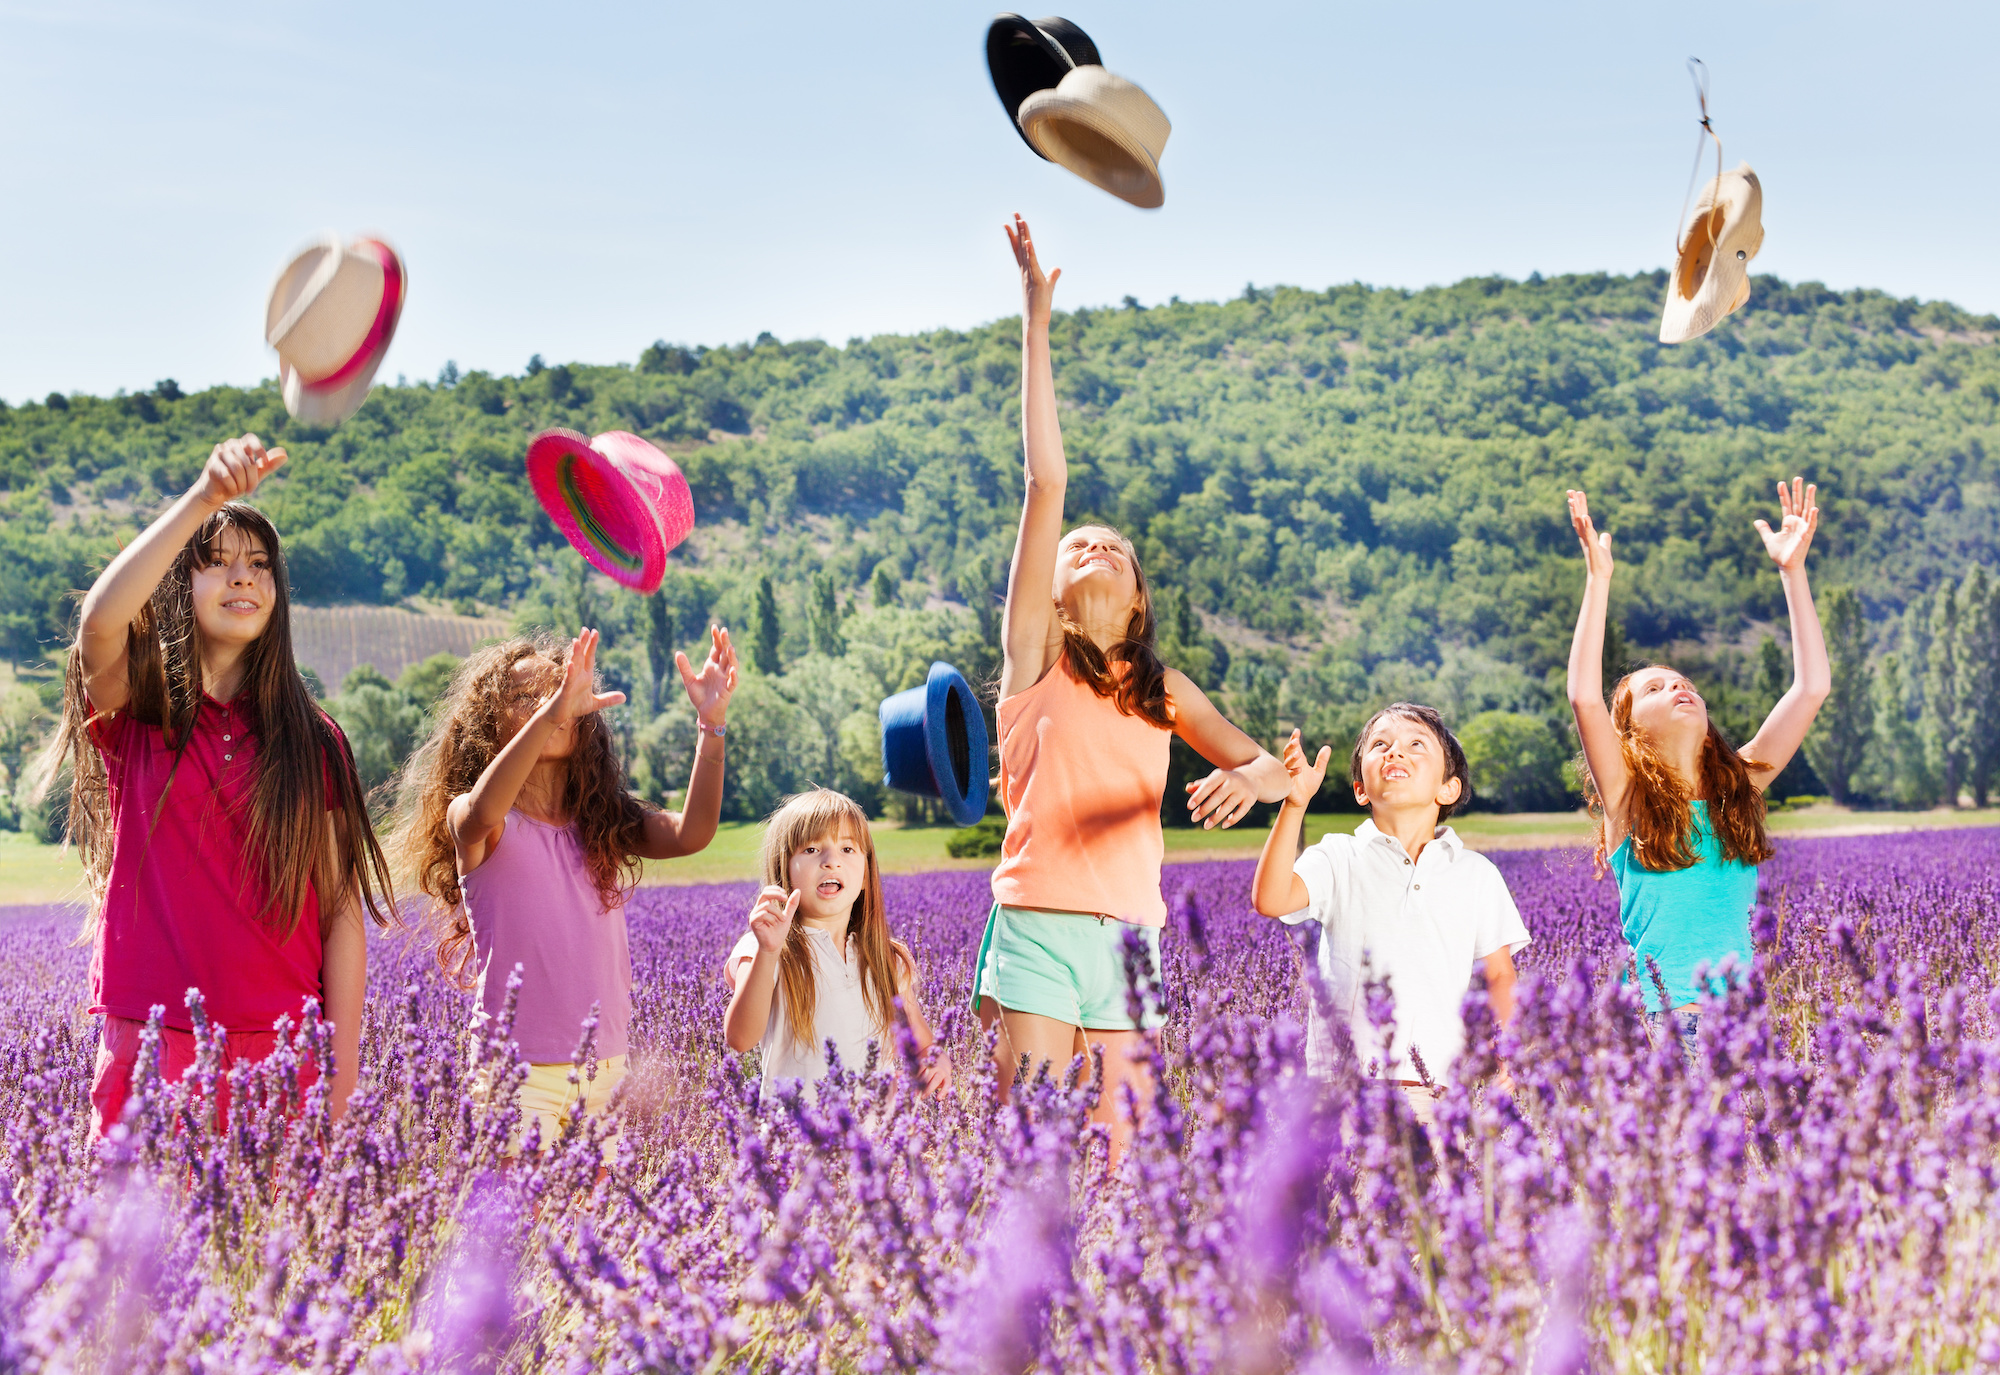 Things to Do in the Provence-Alpes-Cote d'Azur Region with Kids